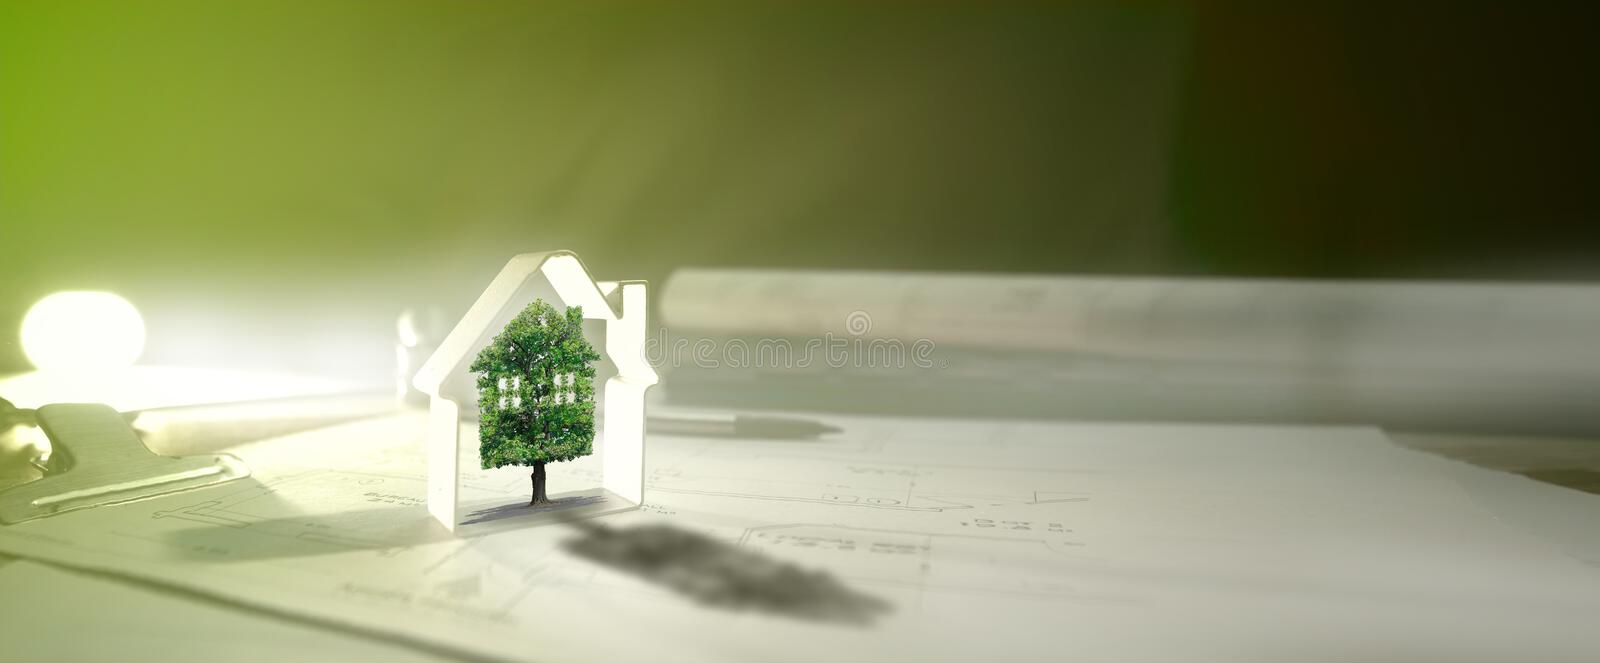 Real estate, house, tree, ecology. Environment and business stock image